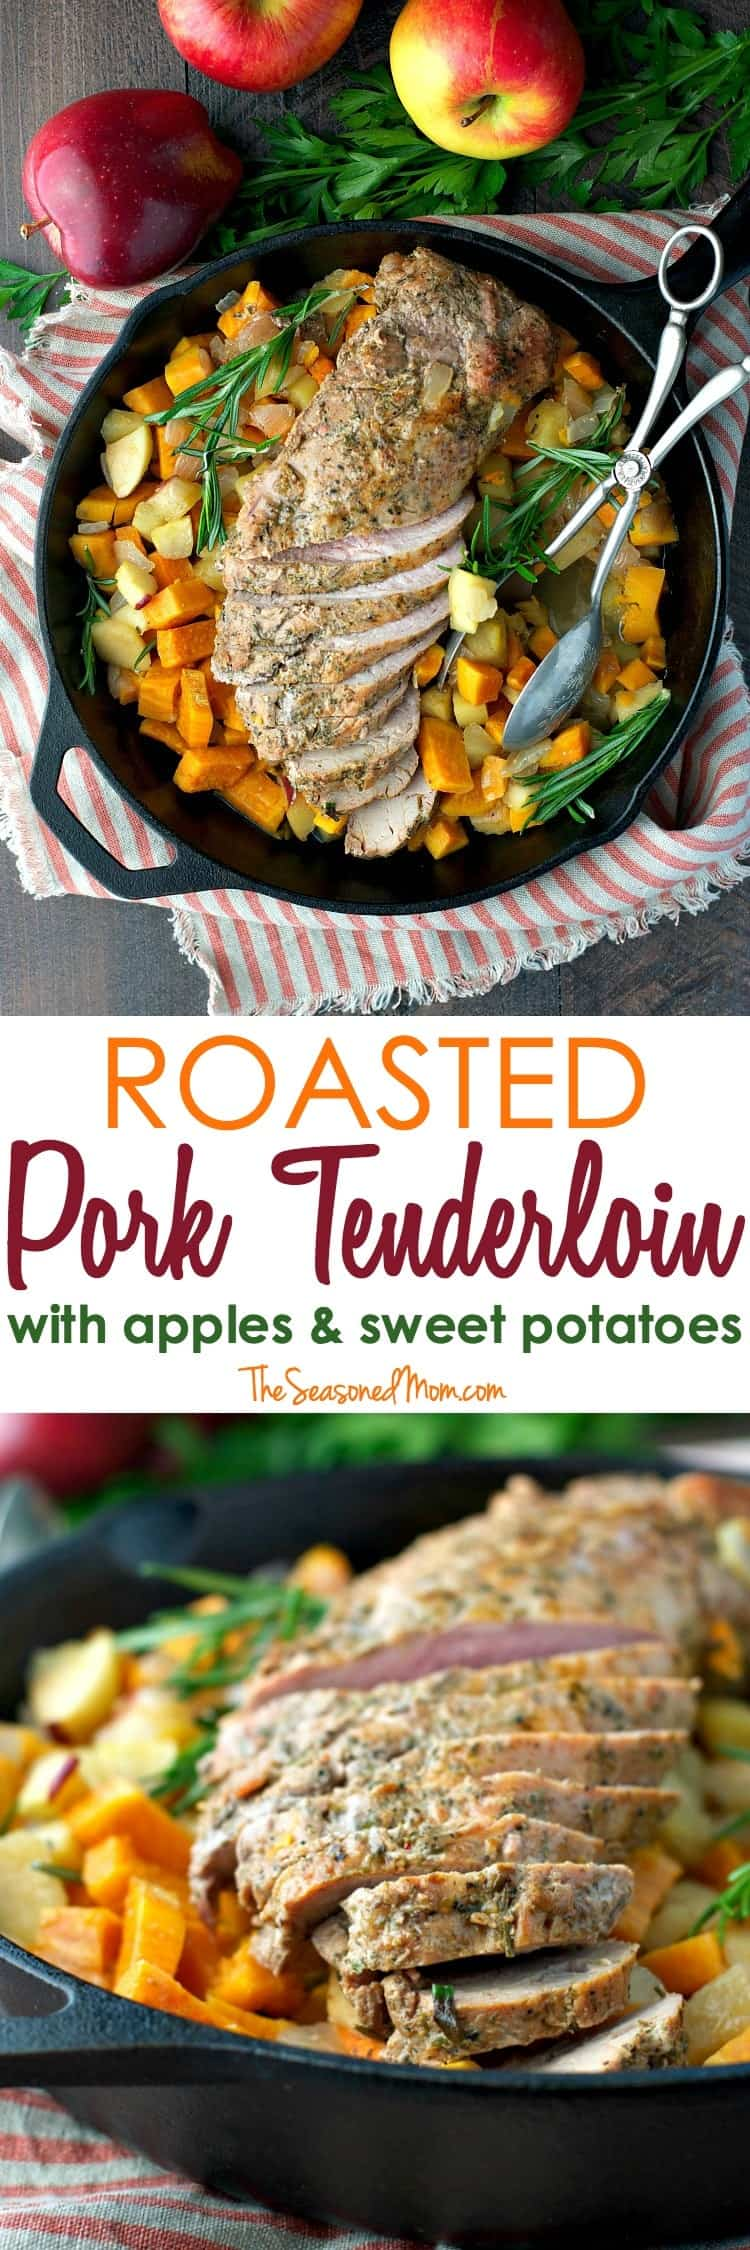 Serve this Roasted Pork Tenderloin with Apples and Sweet Potatoes for an easy 30-minute dinner on your busiest weeknights!